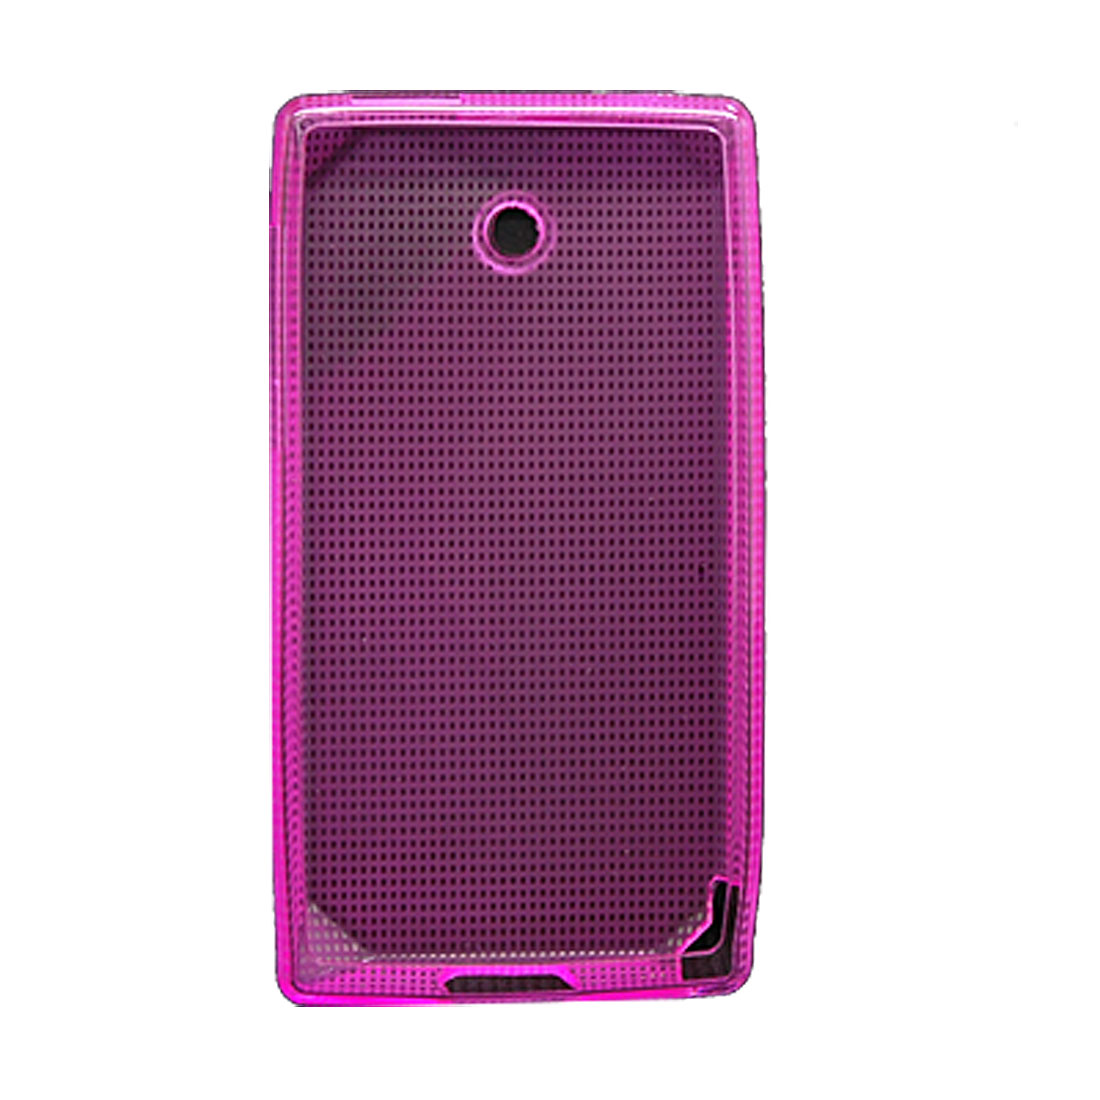 Back Cover Soft Plastic Shield Case for HTC Diamond Pink